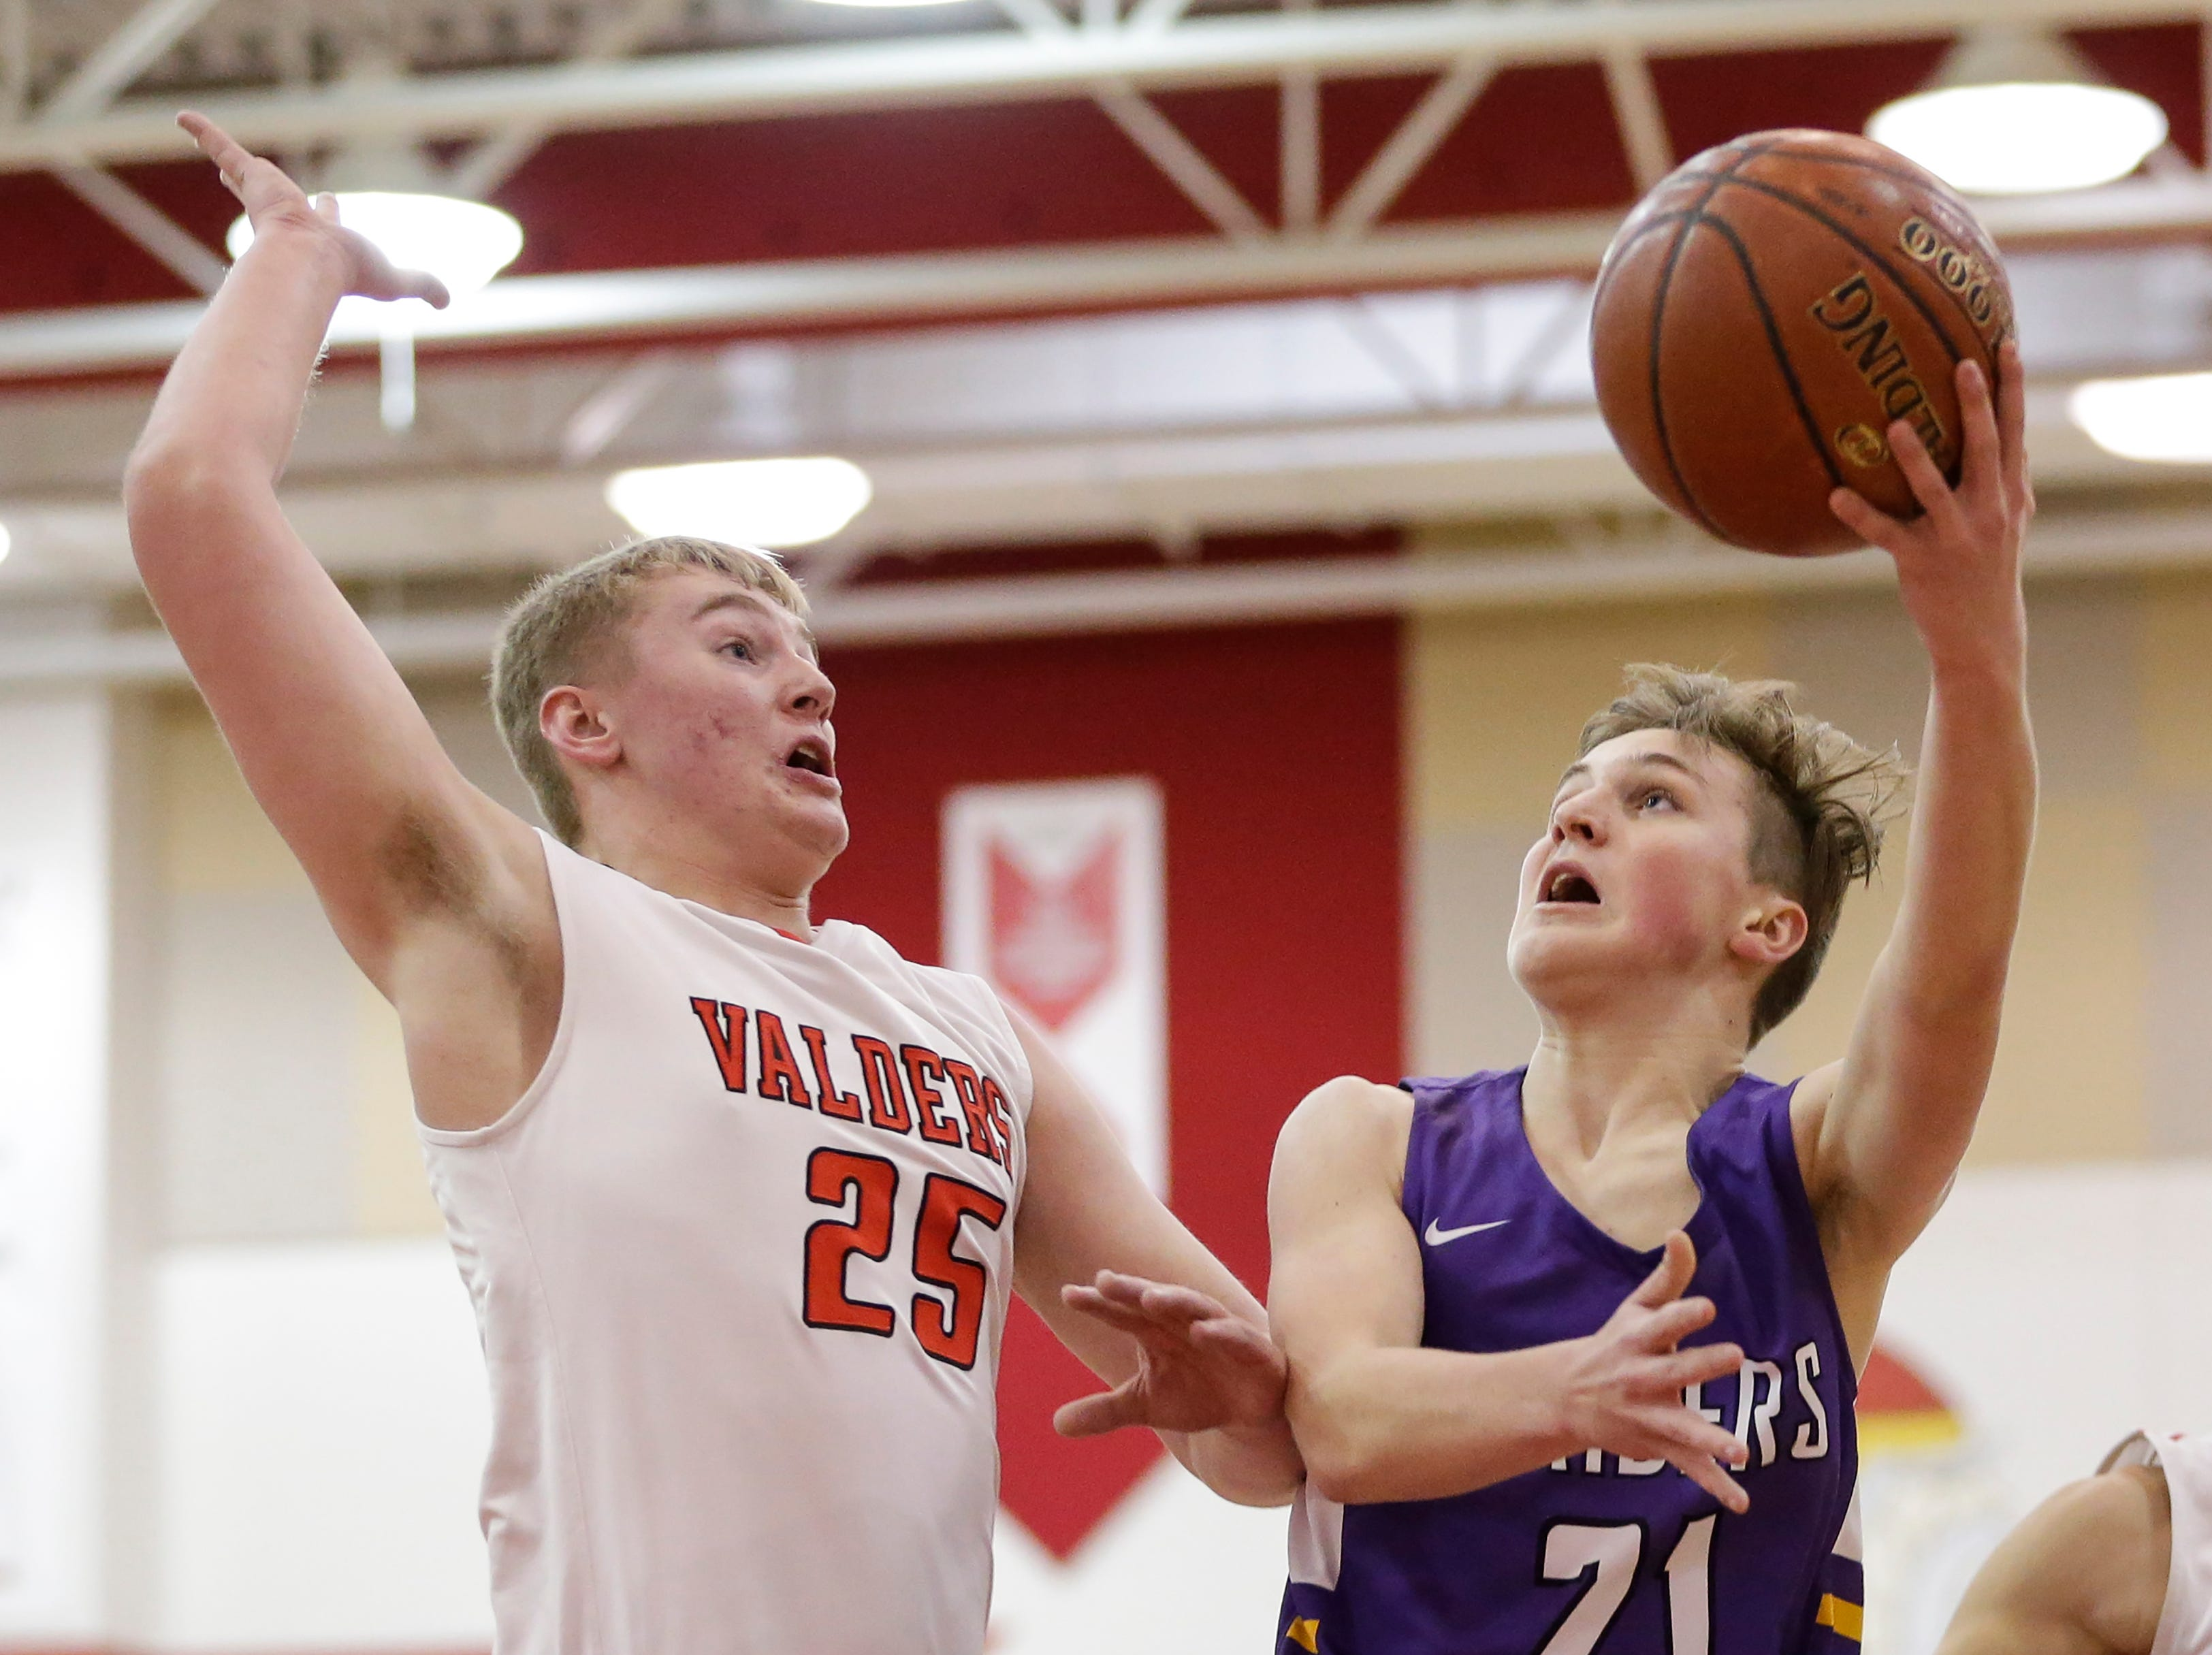 Two Rivers' Bryce Peterson (21) shoots against Valders's Ethen Lutzke (25) at Valders High School Thursday, January 24, 2019, in Valders, Wis. Joshua Clark/USA TODAY NETWORK-Wisconsin